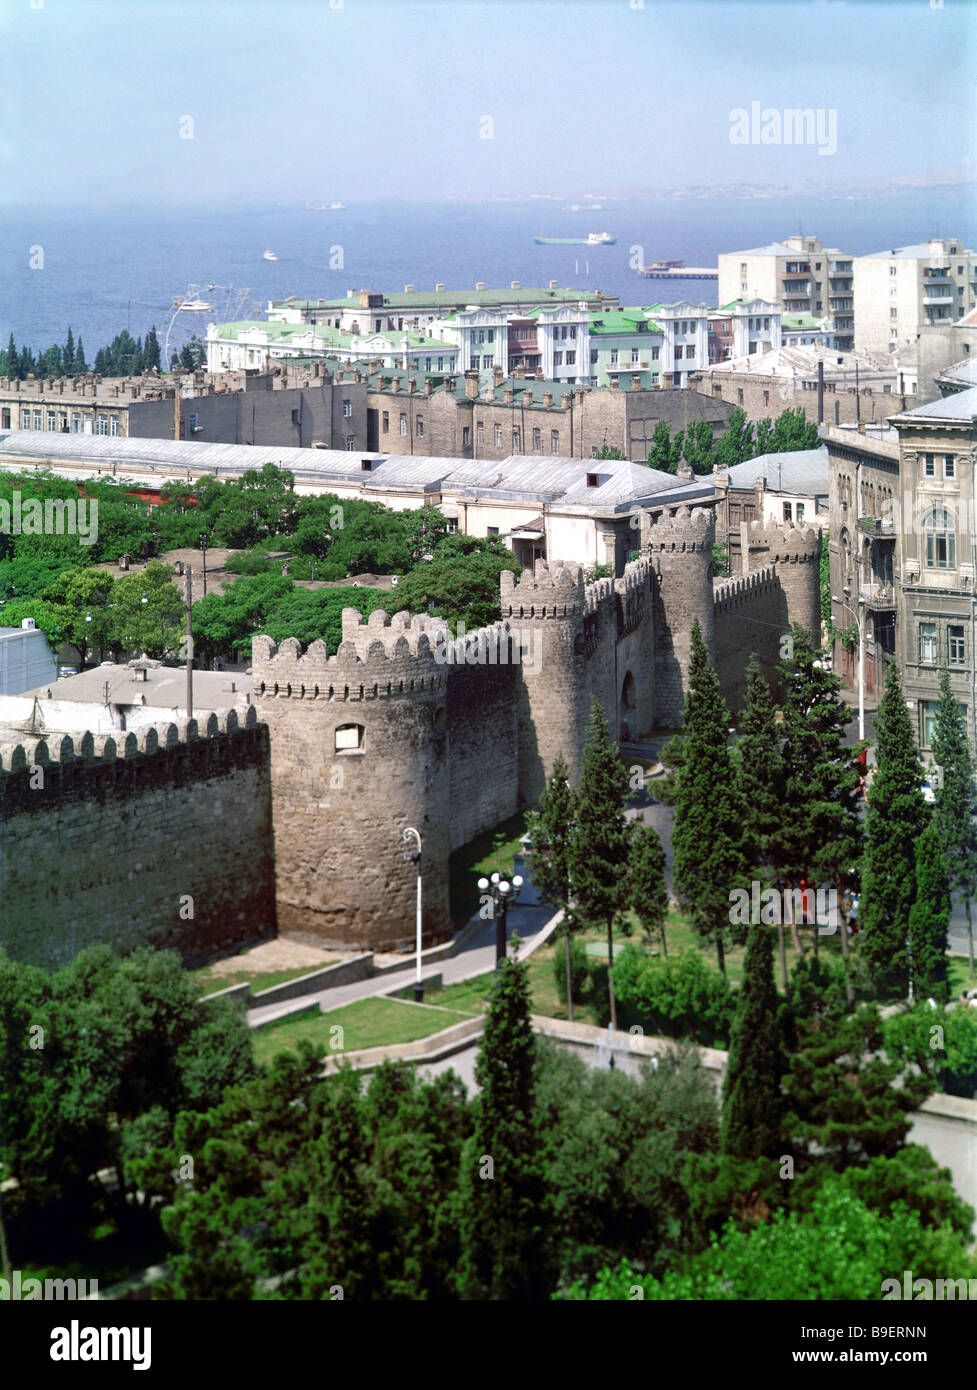 A fortress in Baku reminds of the town s feudal past - Stock Image